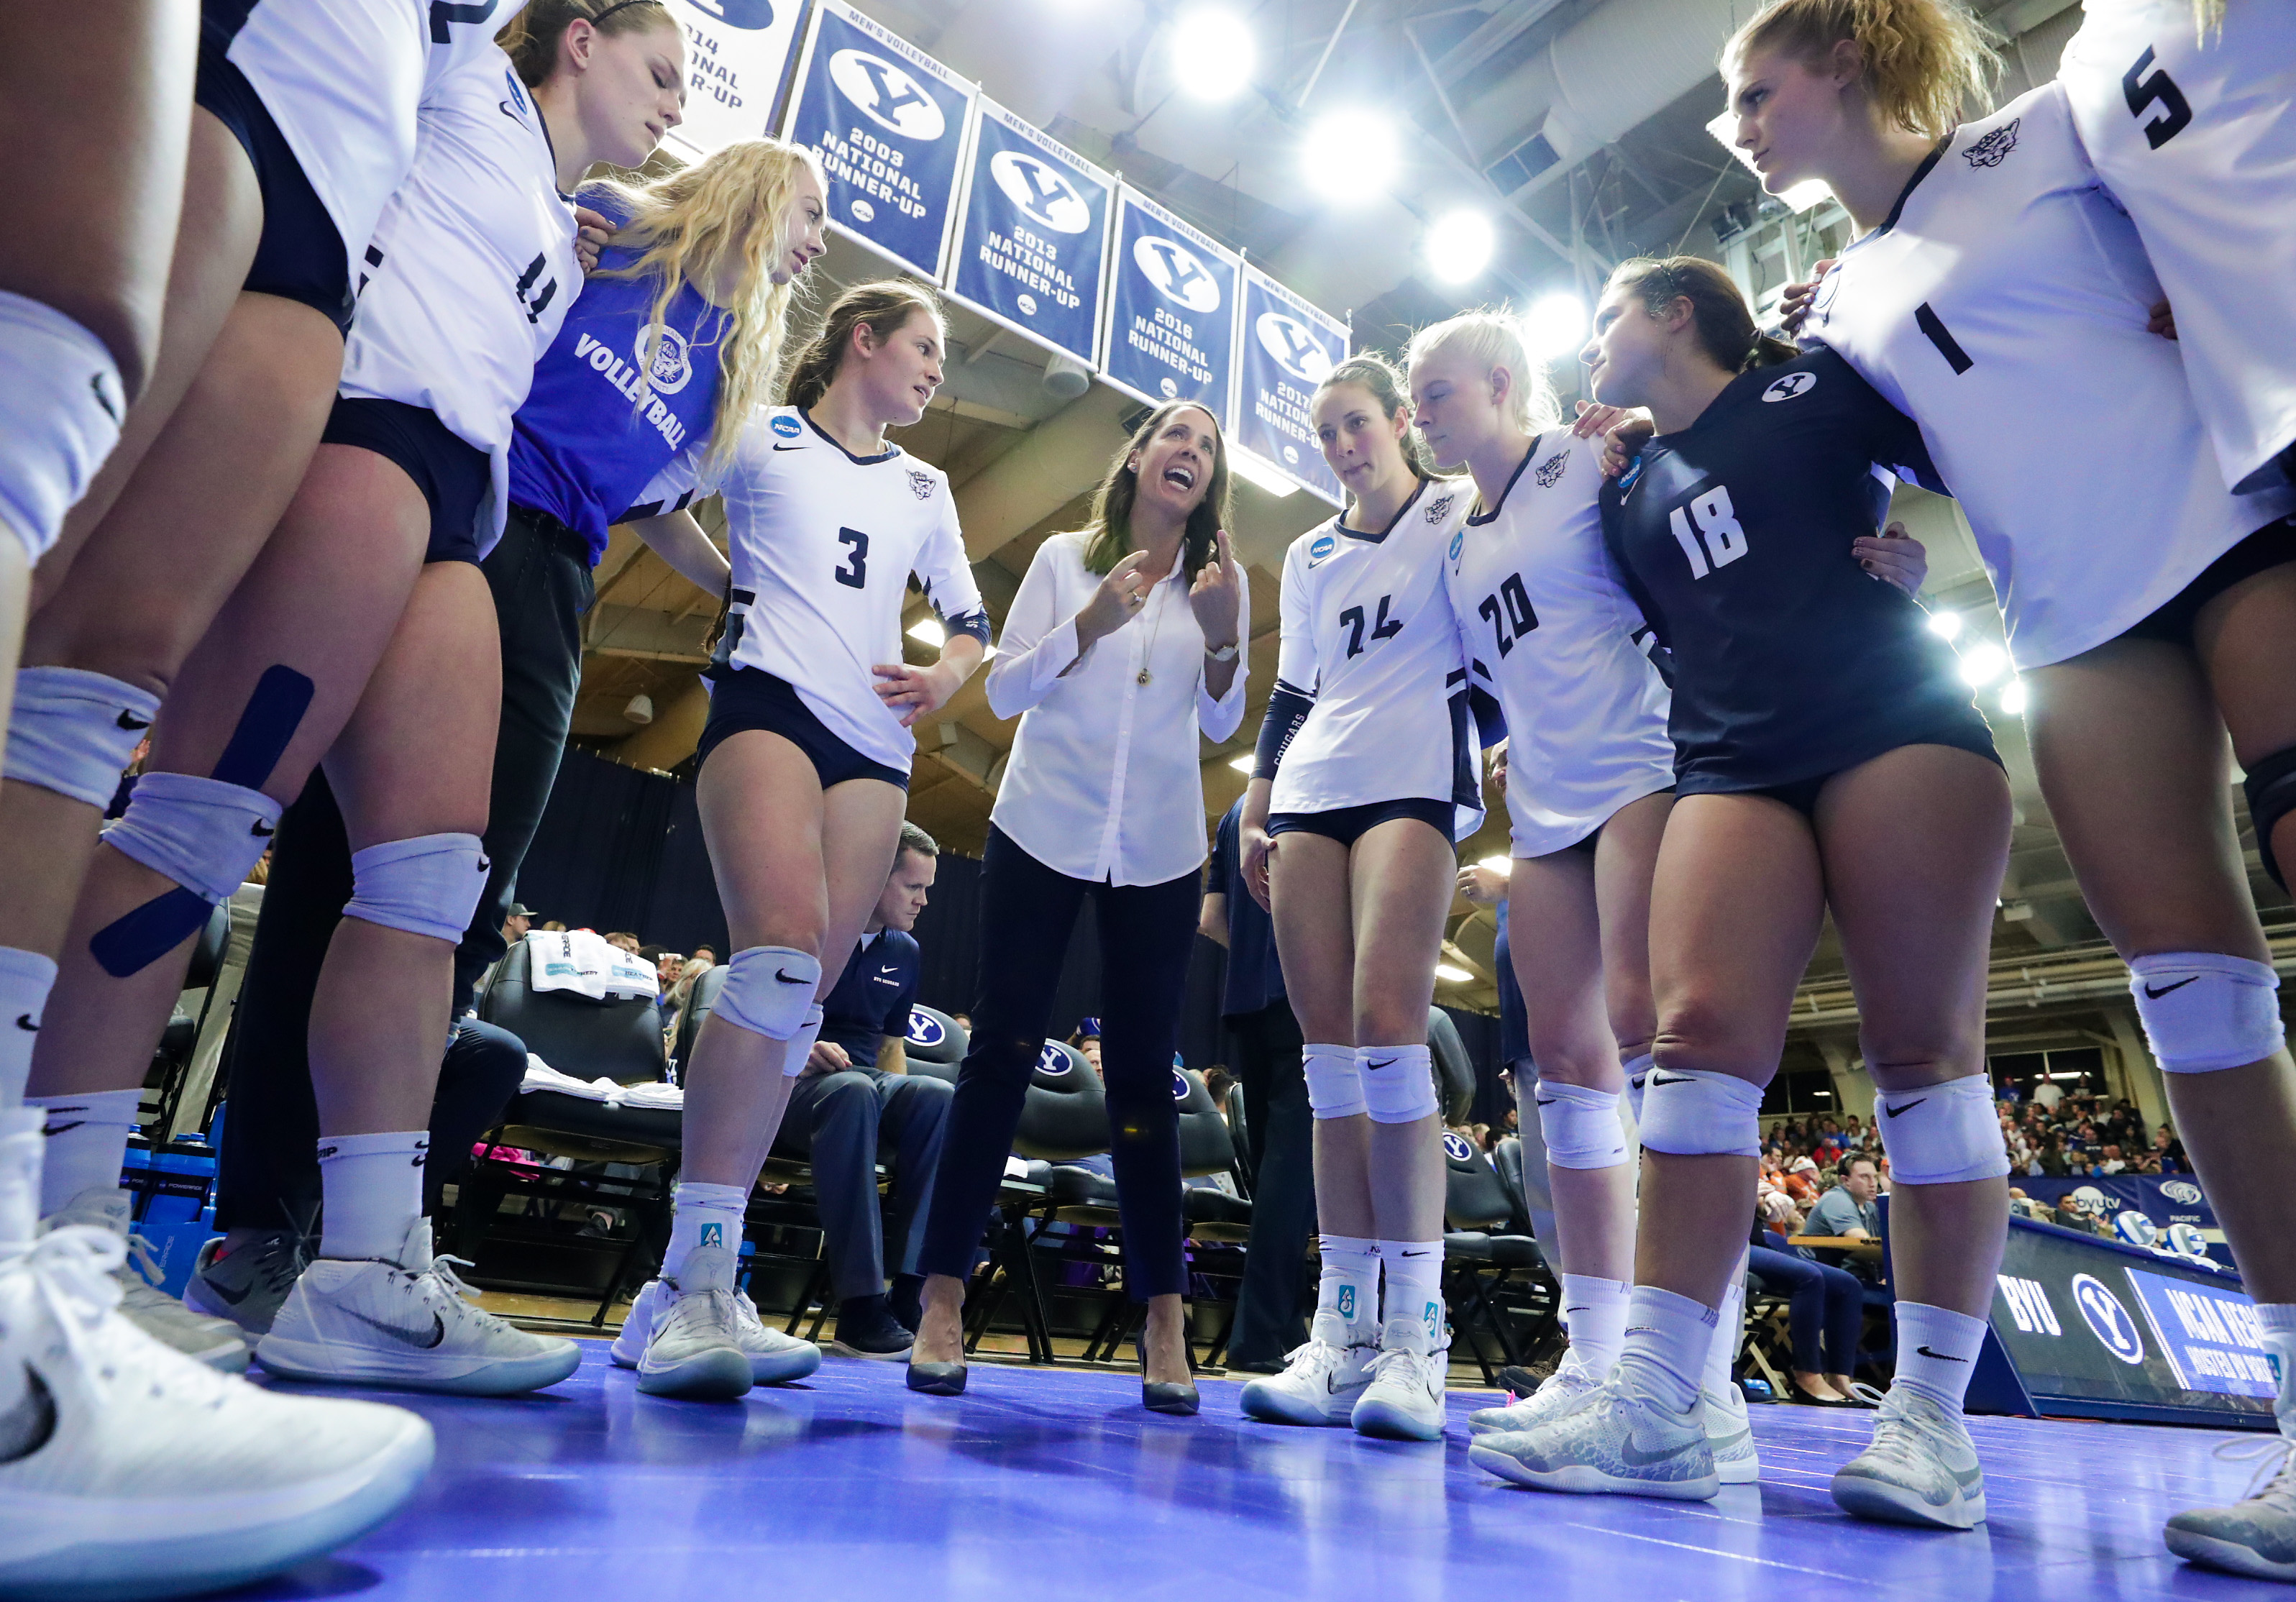 JW1_8537 BYU Head Coach Heather Olmstead talks to her team before the match. The #4 BYU Women's Volleyball team defeated #5 Texas 3-0 in the Regional Final of the NCAA Women's Volleyball Championships. 18wVLB NCAA vs Texas #4 BYU defeats #5 Texas 3-0 December 8, 2018 Photo by Jaren Wilkey/BYU BYU PHOTO 2018 All Rights Reserved photo@byu.edu (801)422-7322